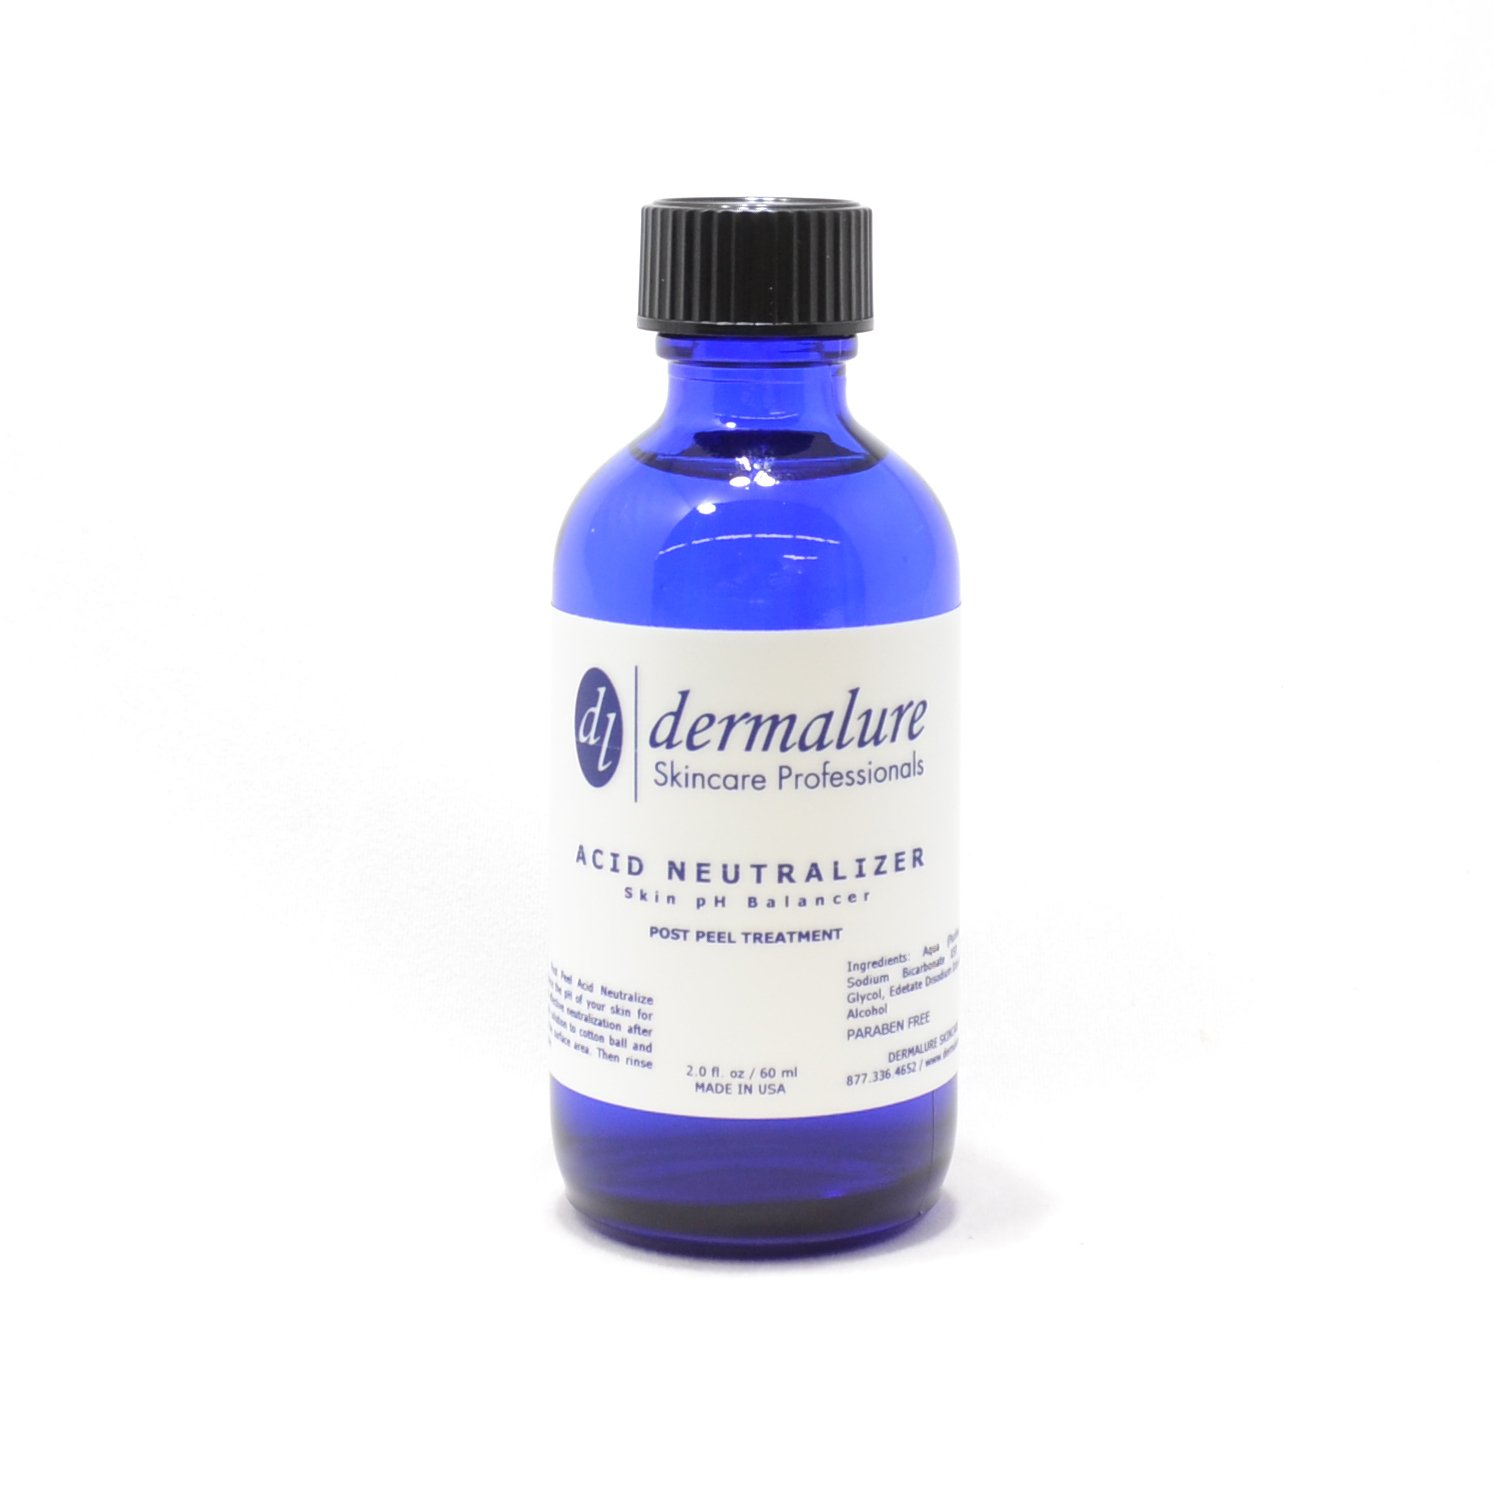 Acid Neutralizer Skin pH Balance - Helps Balance the Ph of Your Skin for the Safe and Effective Neutralization After Peeling 2oz. 60ml by Dermalure